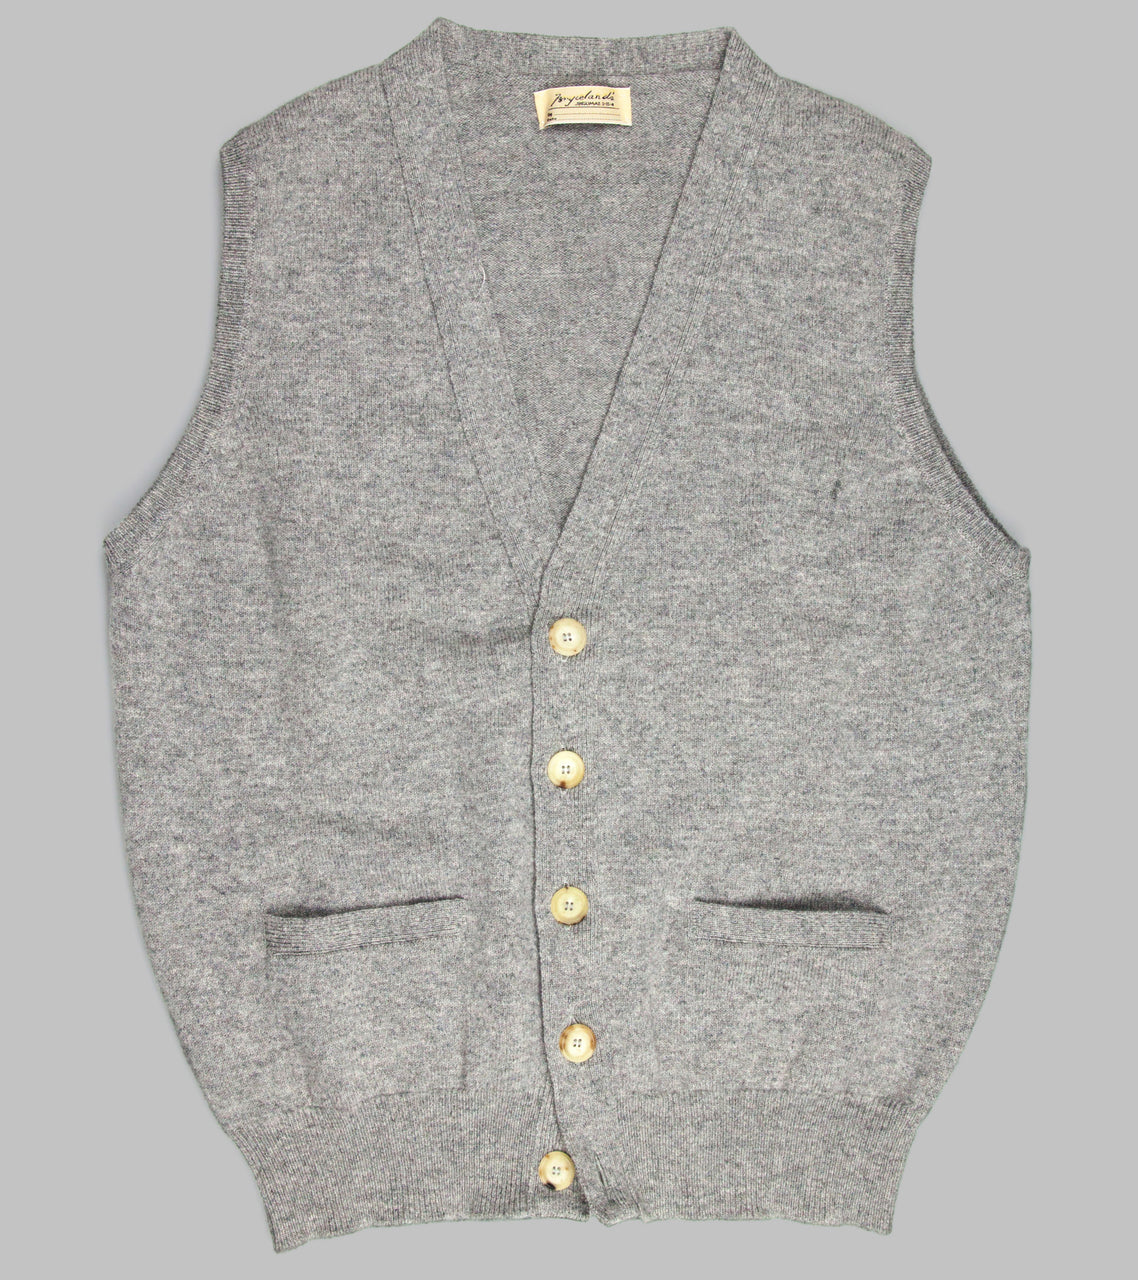 Bryceland's Lambswool Sleeveless Cardigan Grey